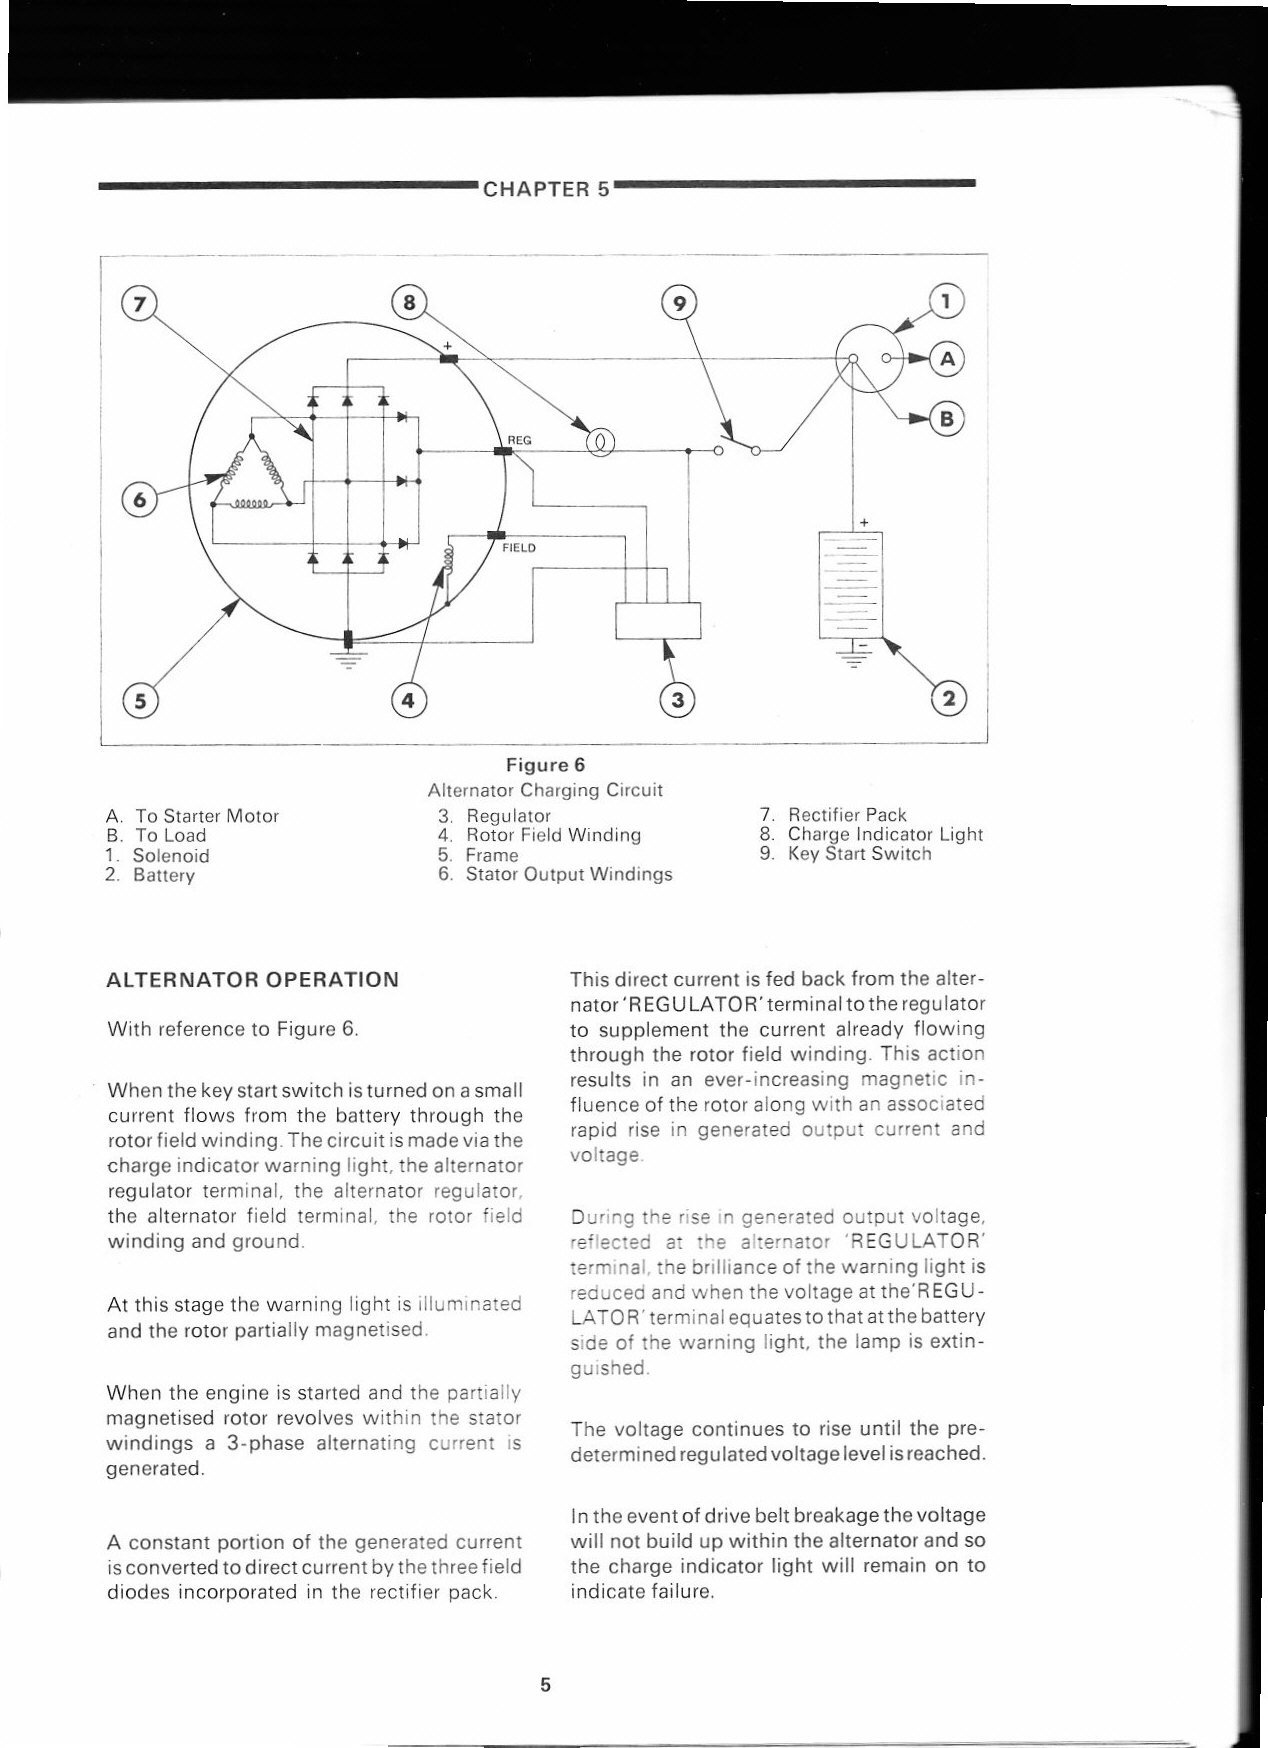 3910 Ford Tractor Ignition Switch Wiring Diagram Schematic Diagrams Backhoe 4610 Fuse Box Trusted Kubota Safety